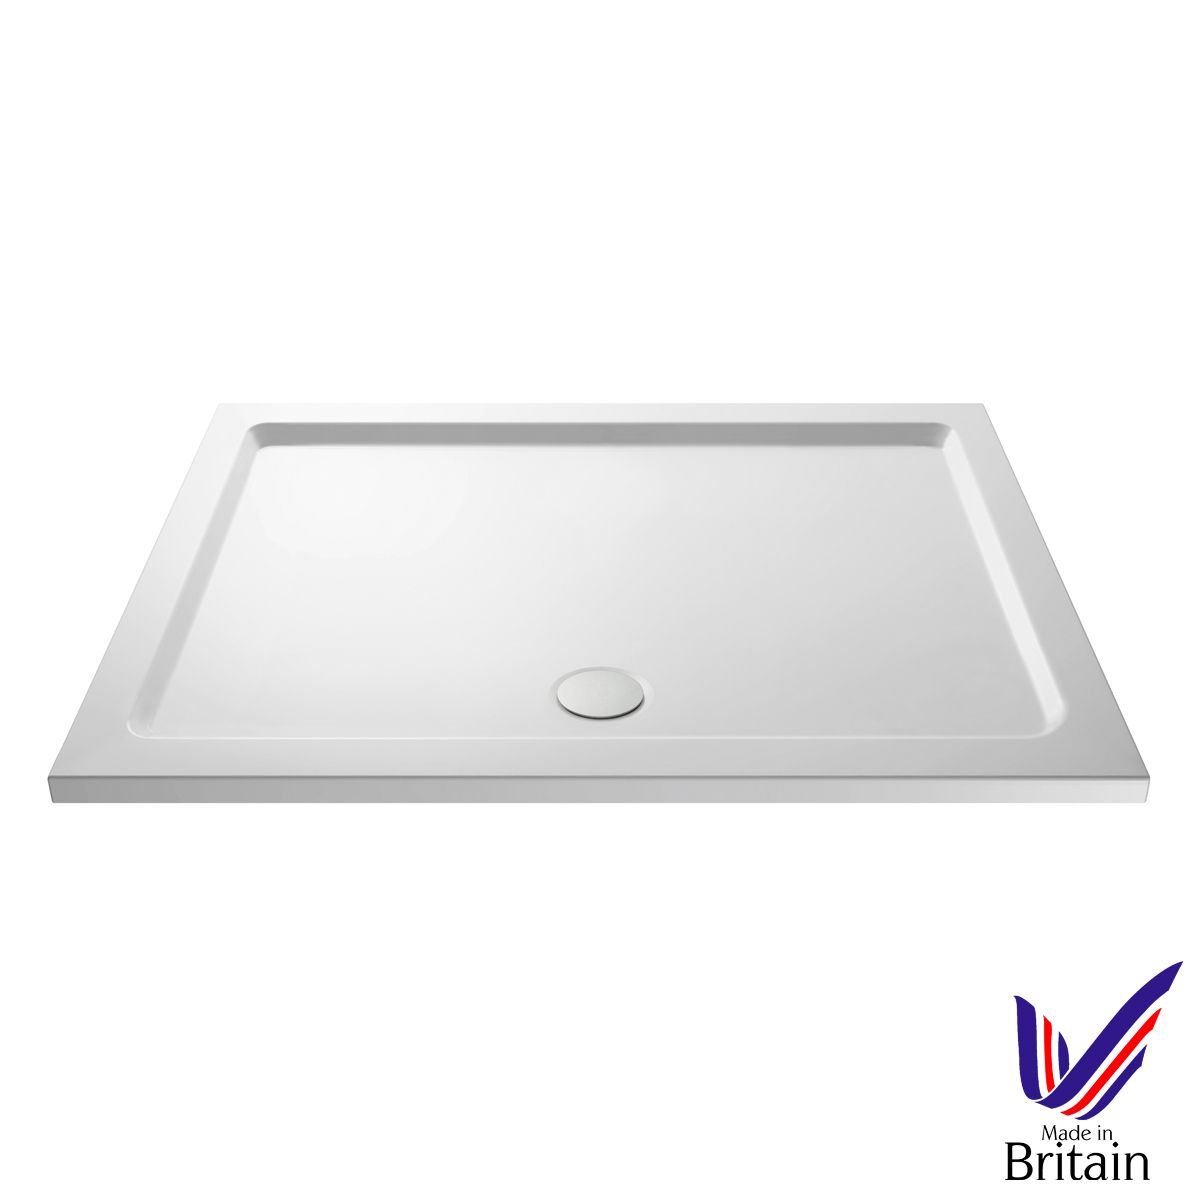 1400 x 800 Shower Tray Rectangular Low Profile by Pearlstone